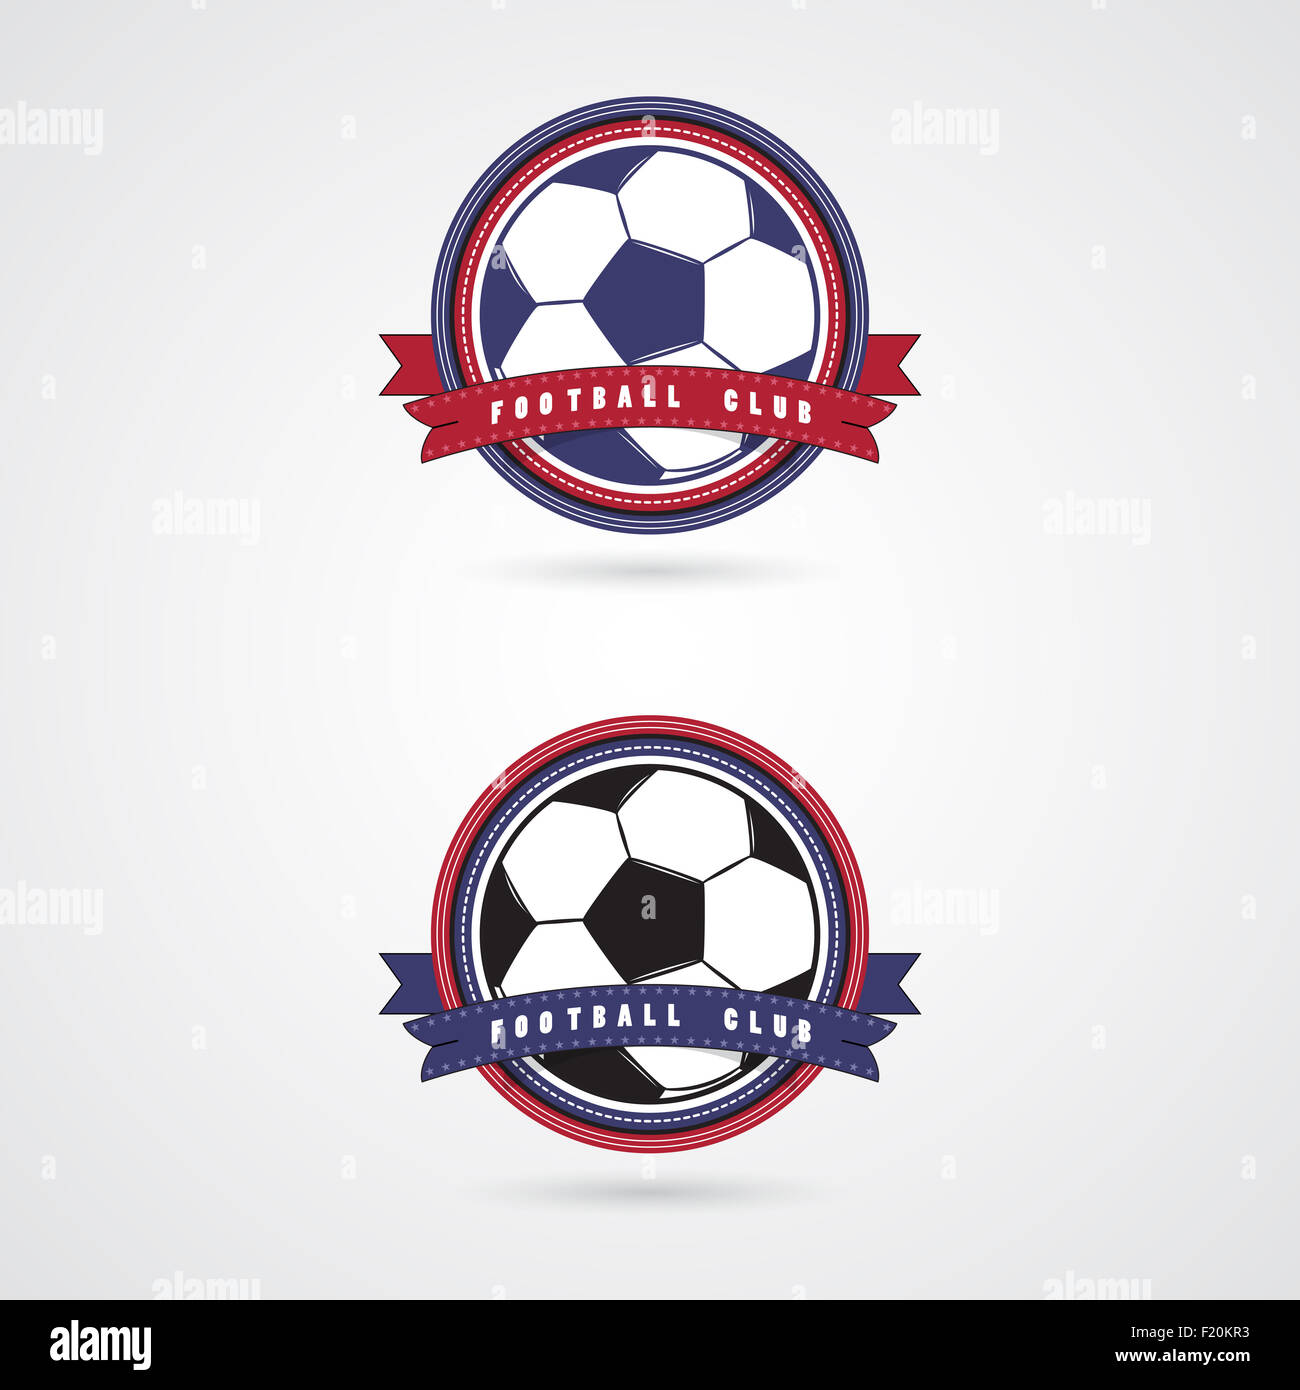 Soccer Football Badge Logo Design Templates.Sport Team Identity.Collection  Of Soccer Themed T Shirt Graphics.